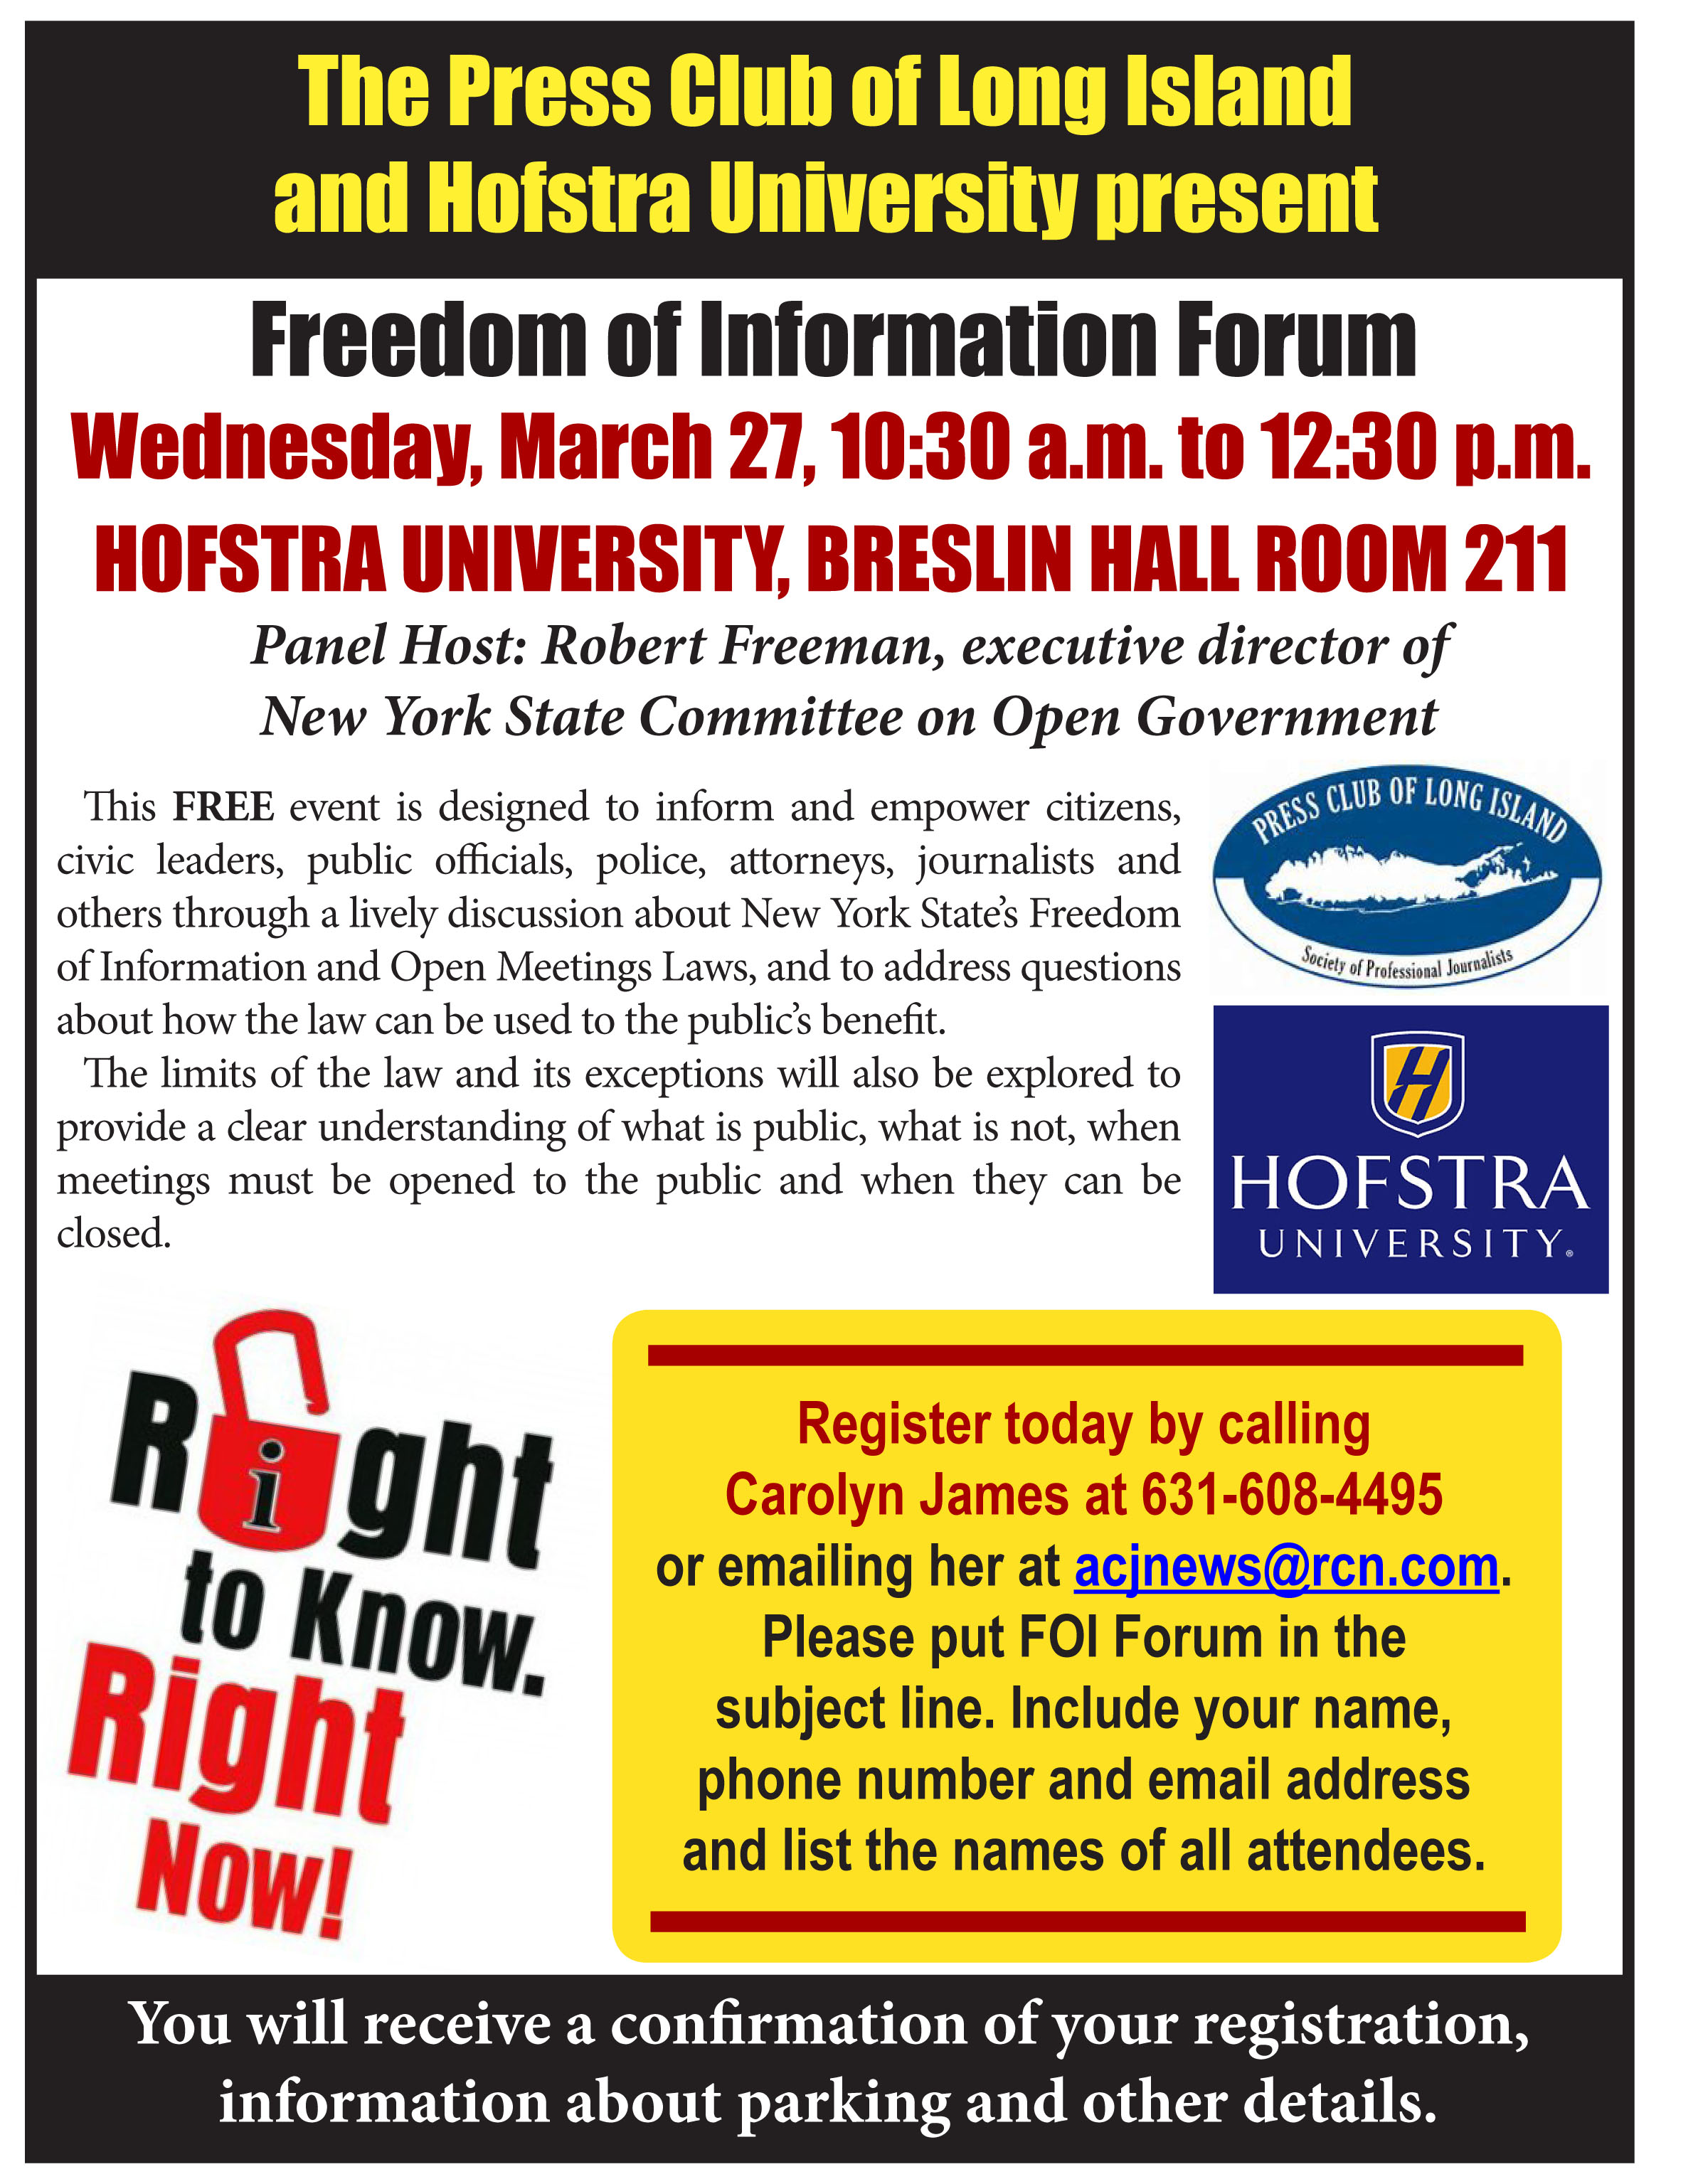 Freedom of Information Forum Flyer.jpg